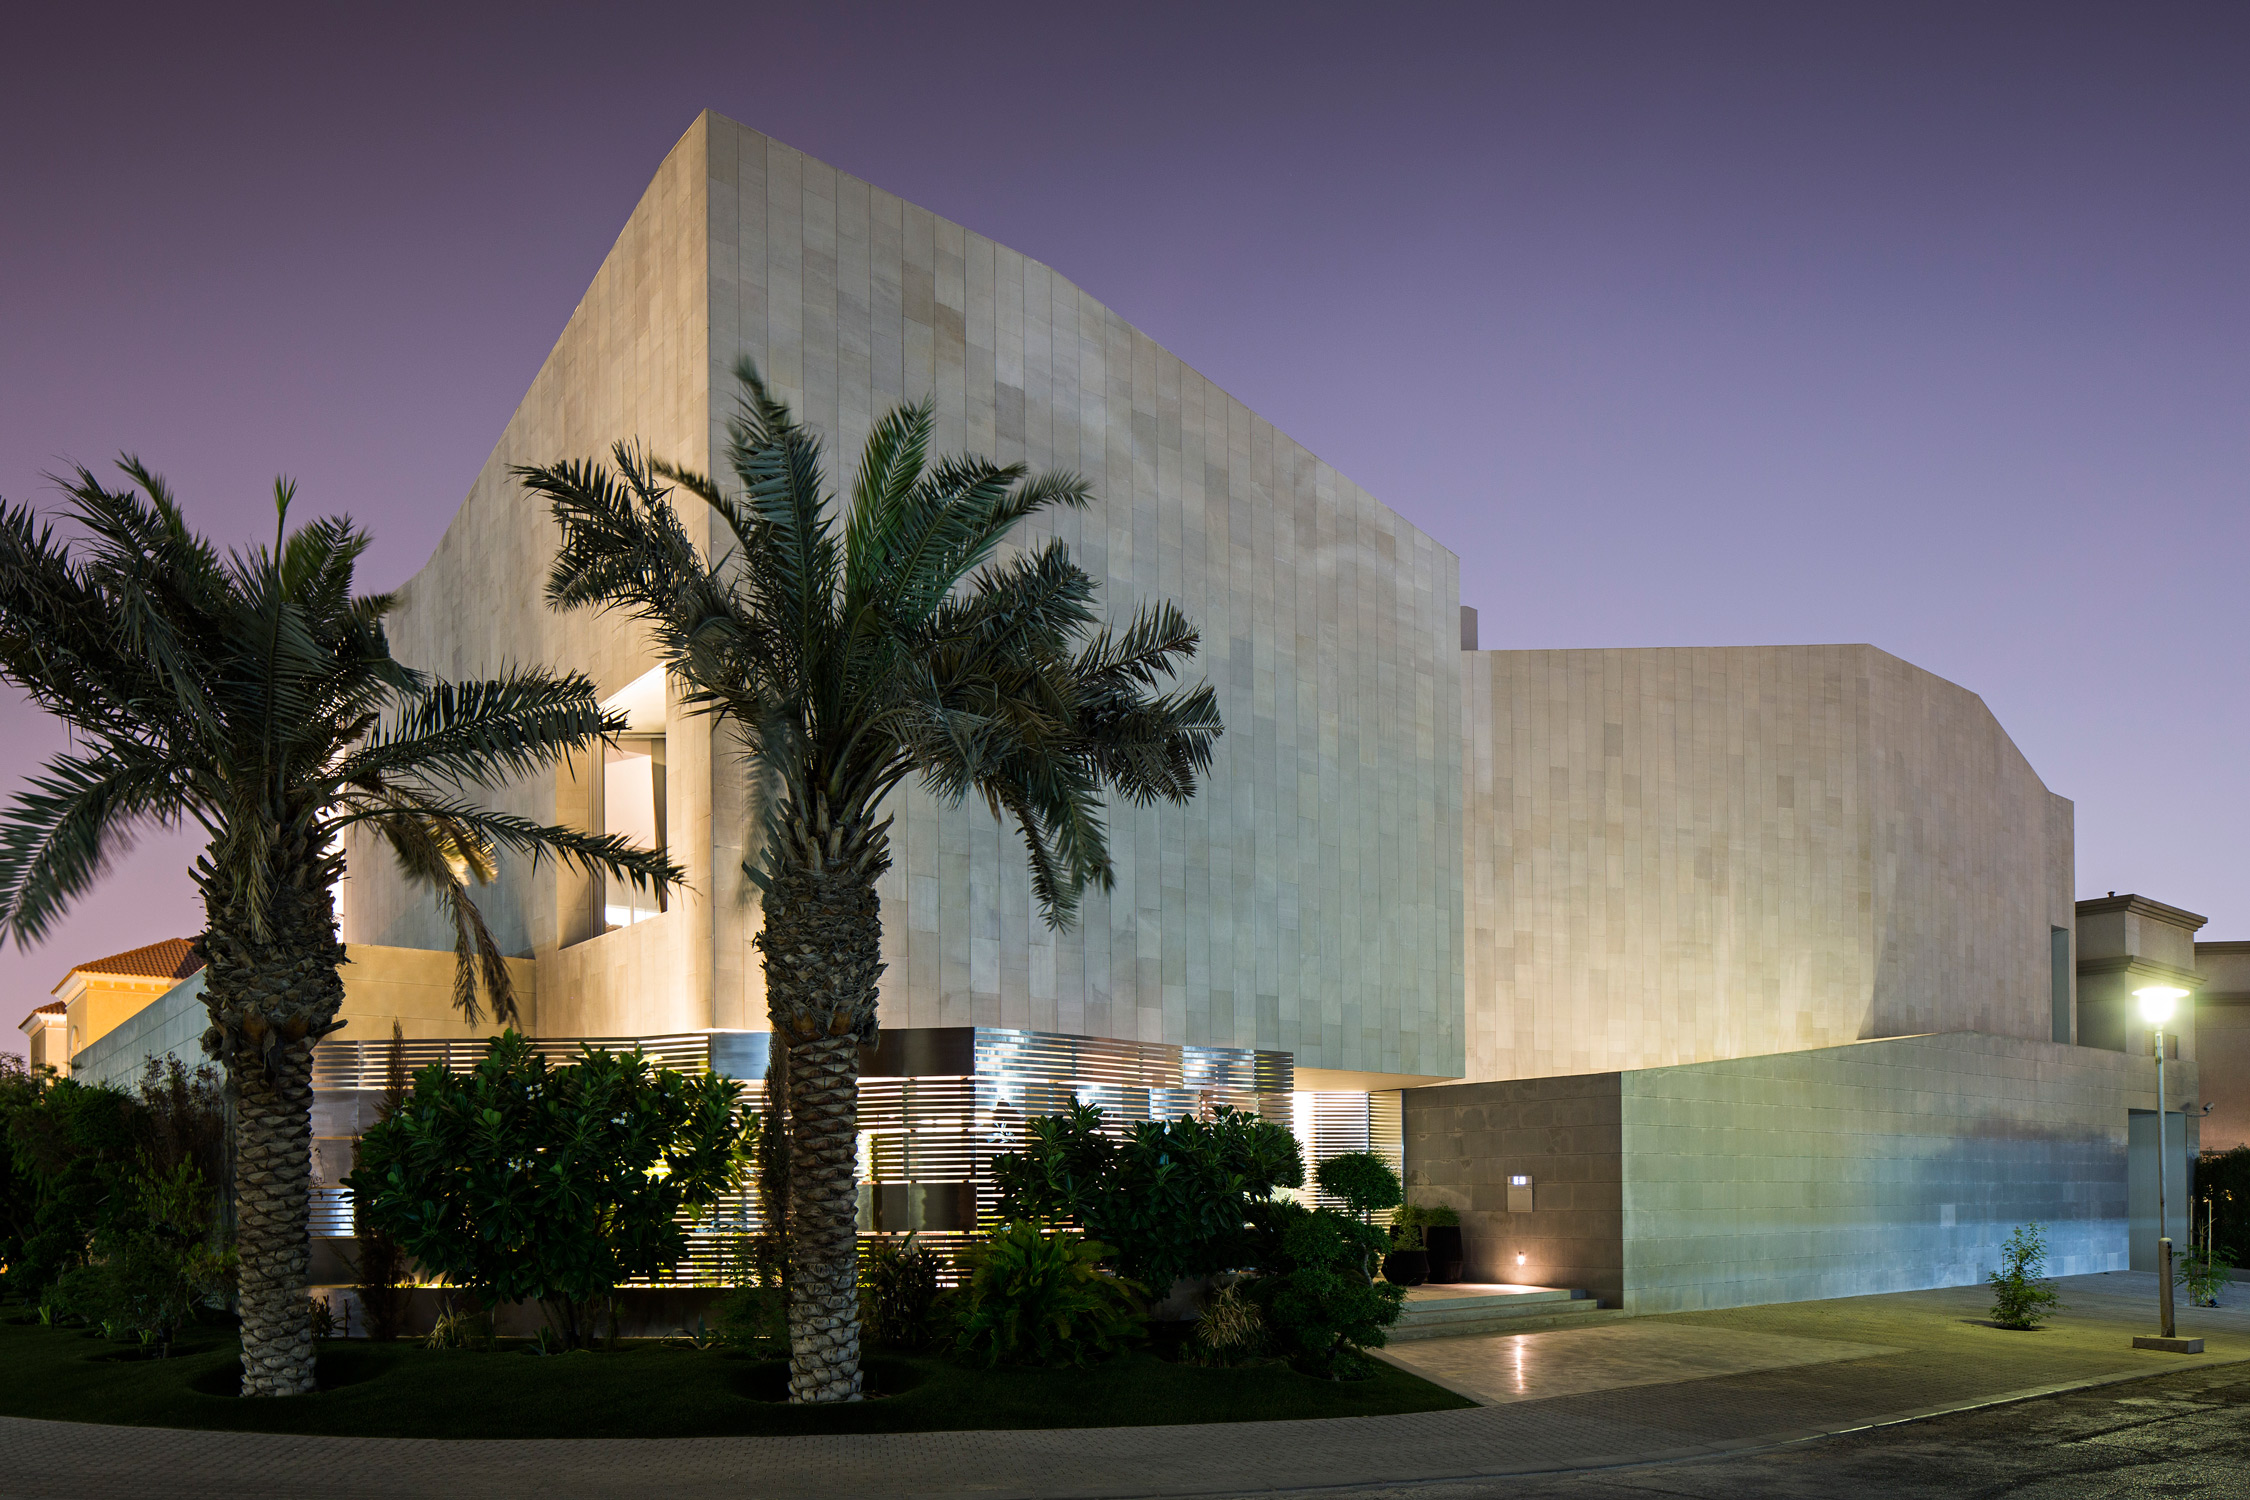 AGI_WALL_HOUSE_KUWAIT_081015_1001